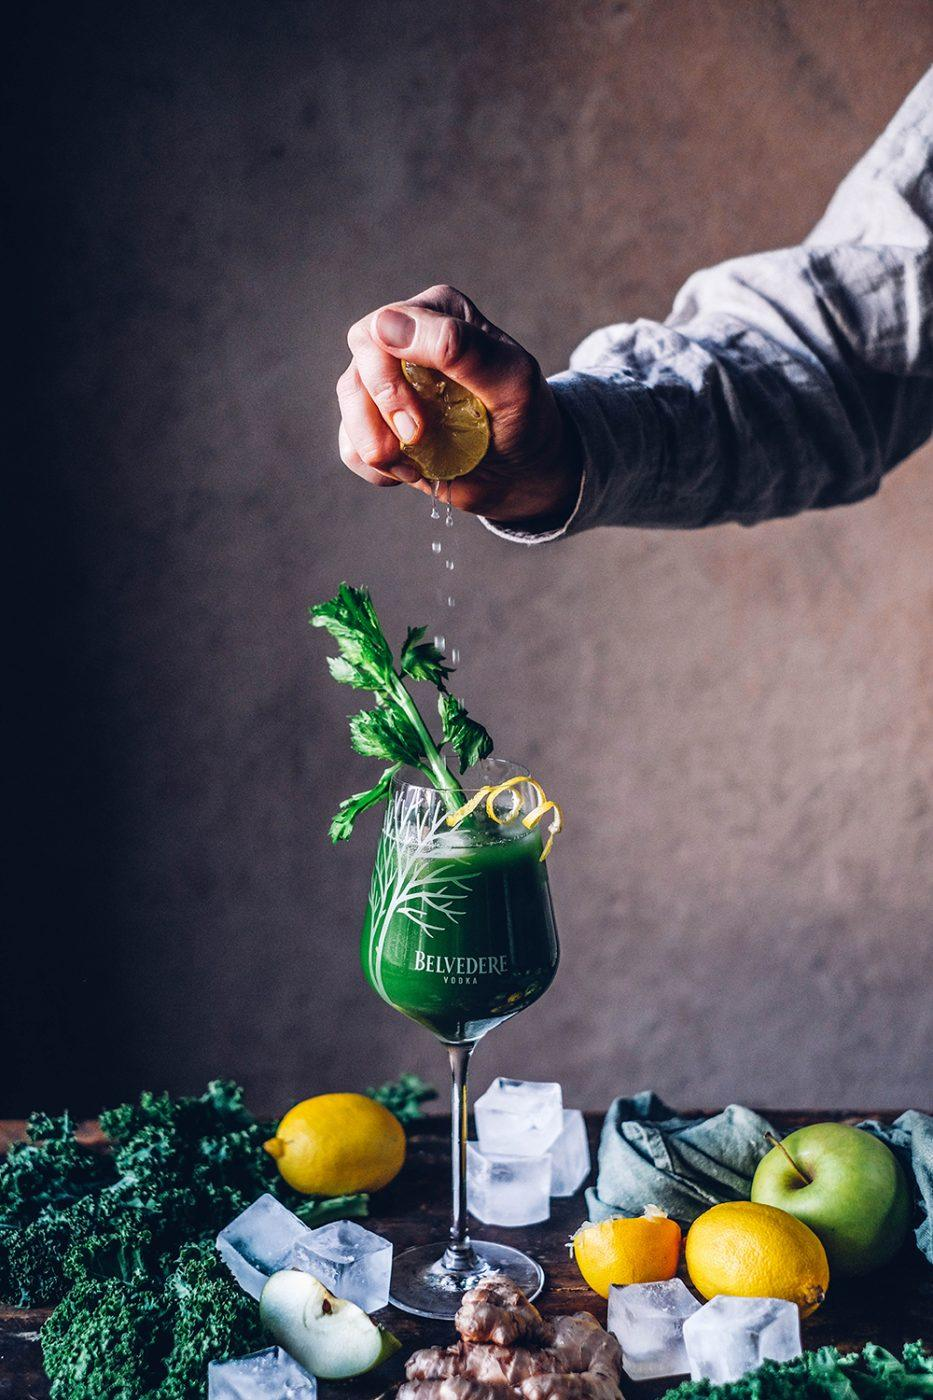 Image for Superfood Cocktails with Kale und Turmeric